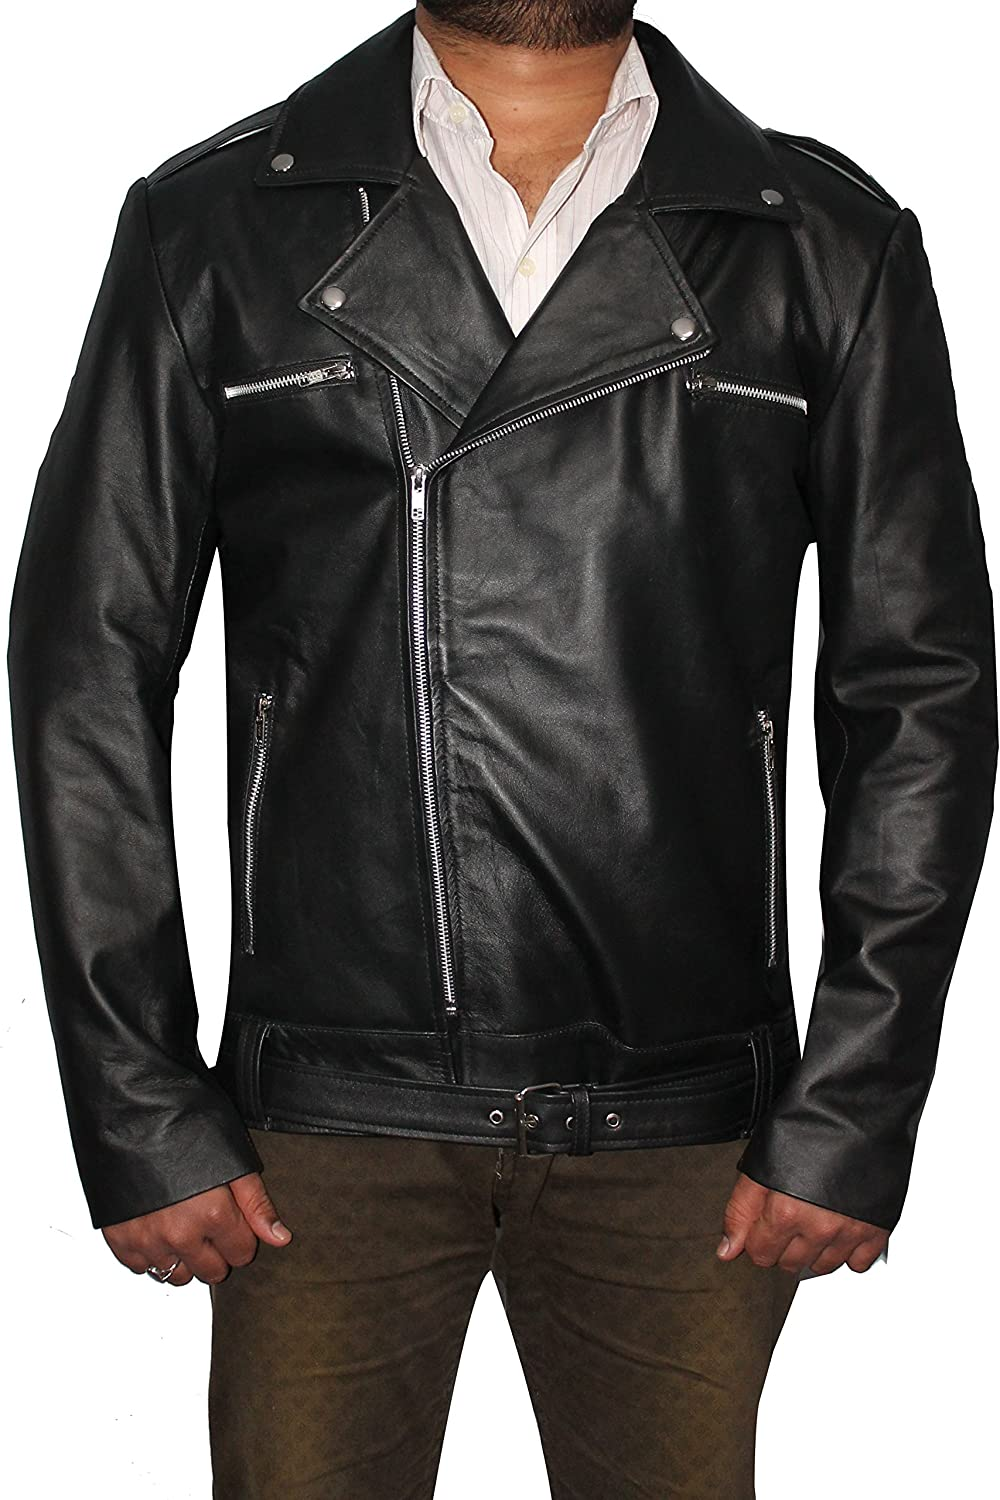 Stylish Black Biker Faux Leather Jacket for Men (XXS- Fit for 35-36 inches Chest)